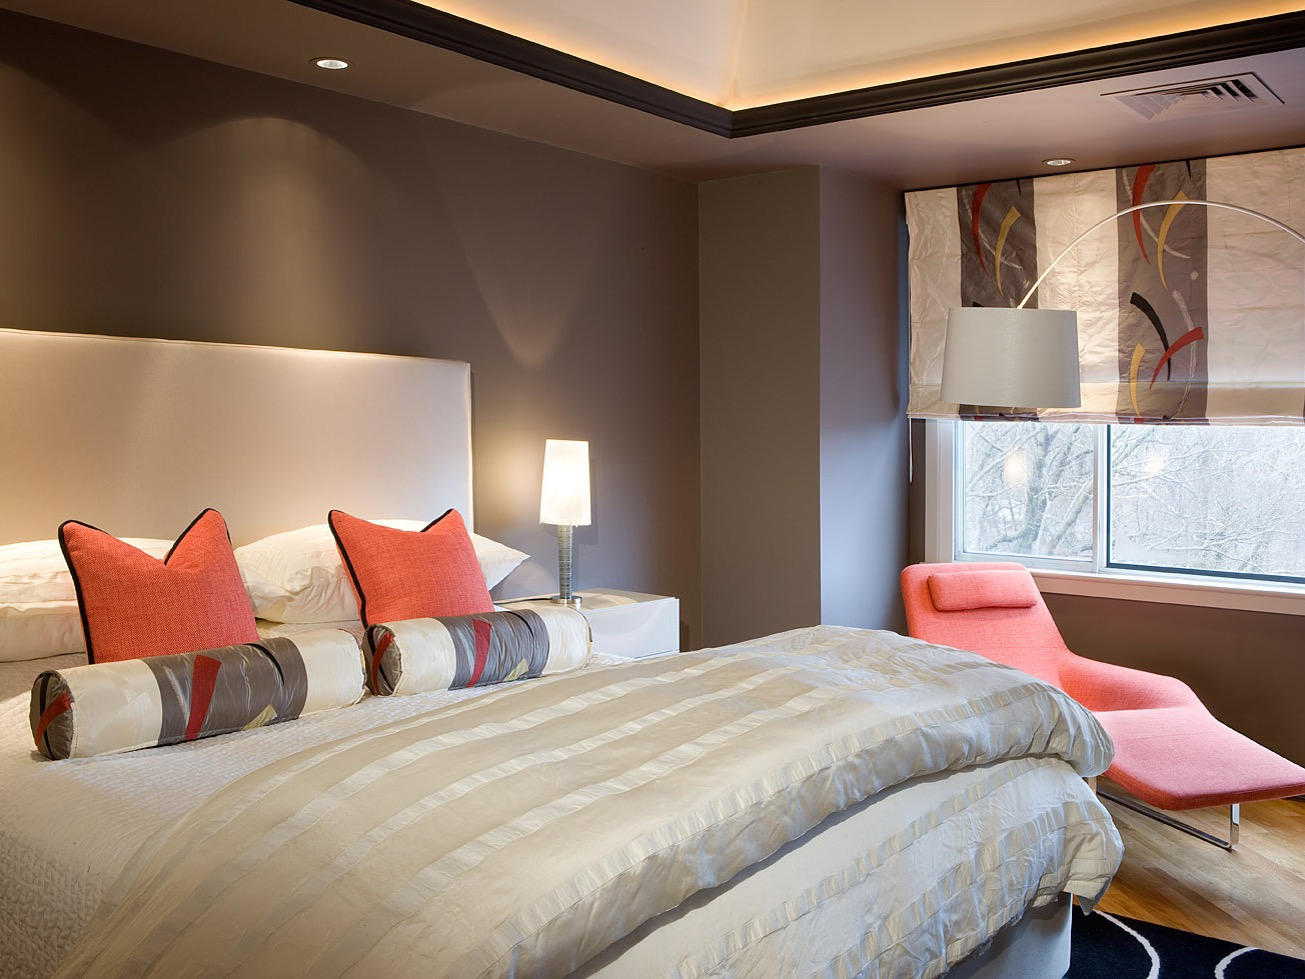 Modern Bedroom With Upholstered Headboard And Neutral Bedding (View 12 of 23)